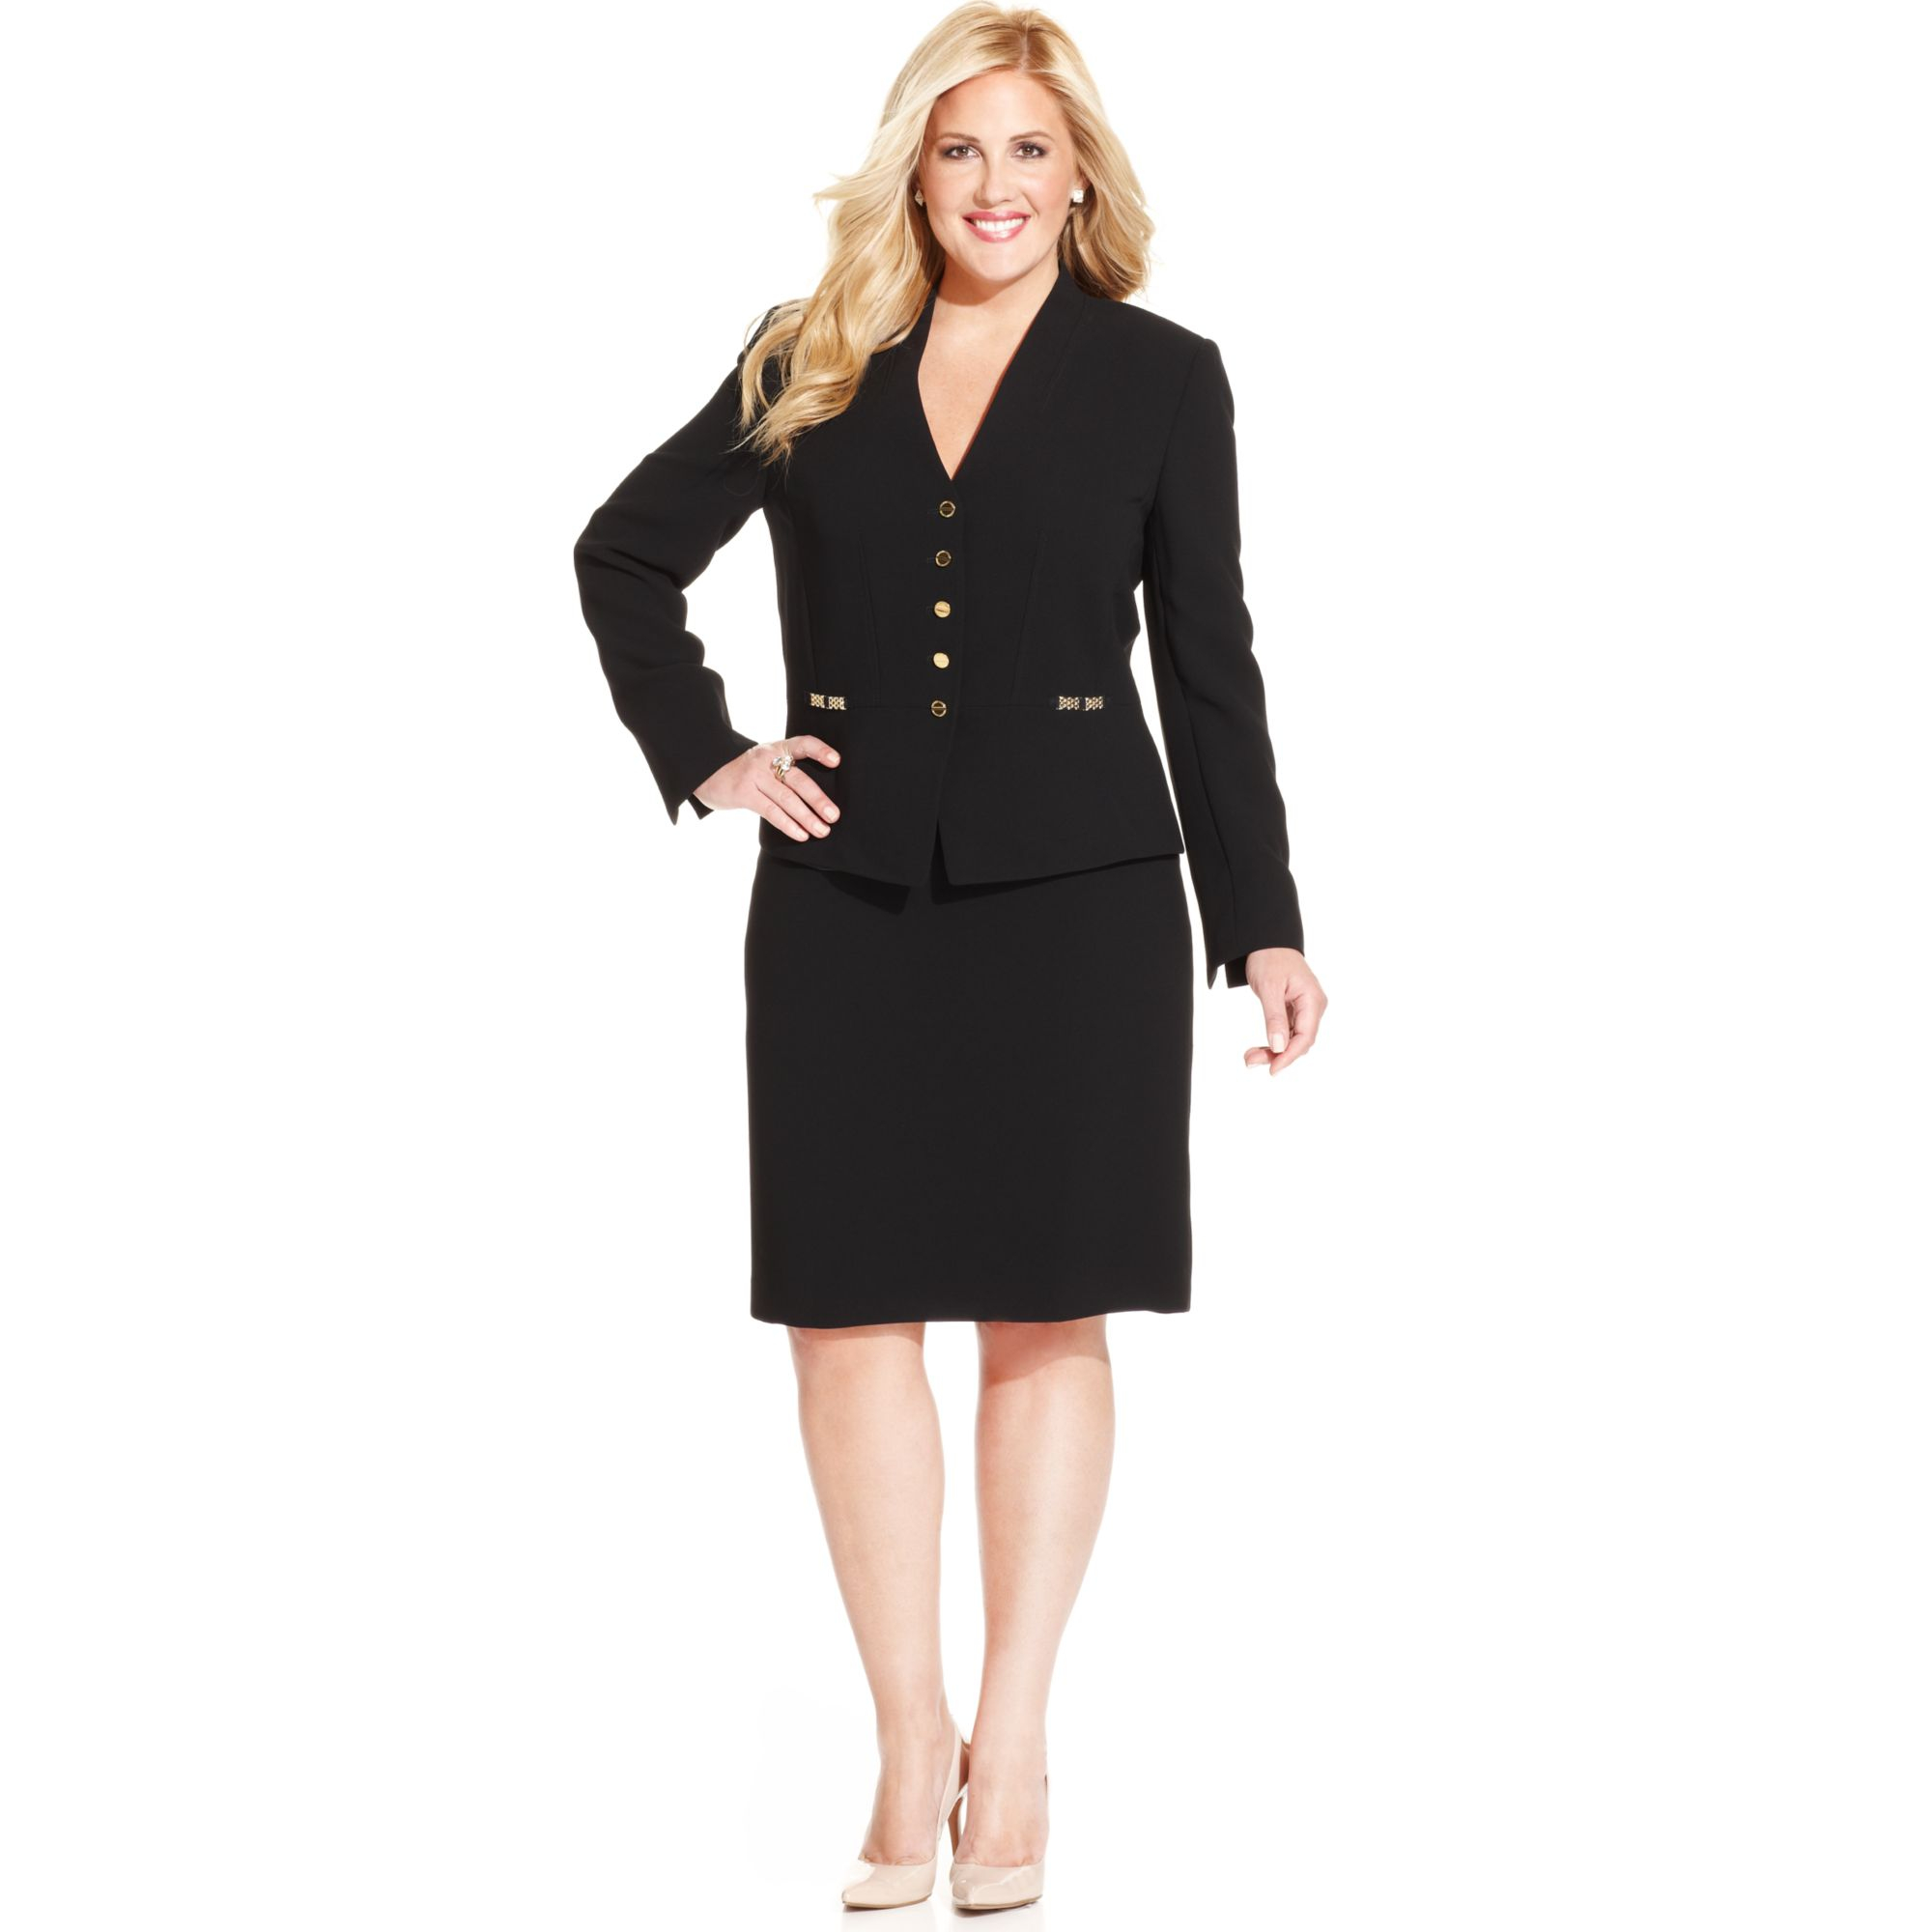 Shop the latest collection of plus size Skirt Suit suits at Macys. Find a wide selection of chic plus size business or casual suits for all occasions including top brands.